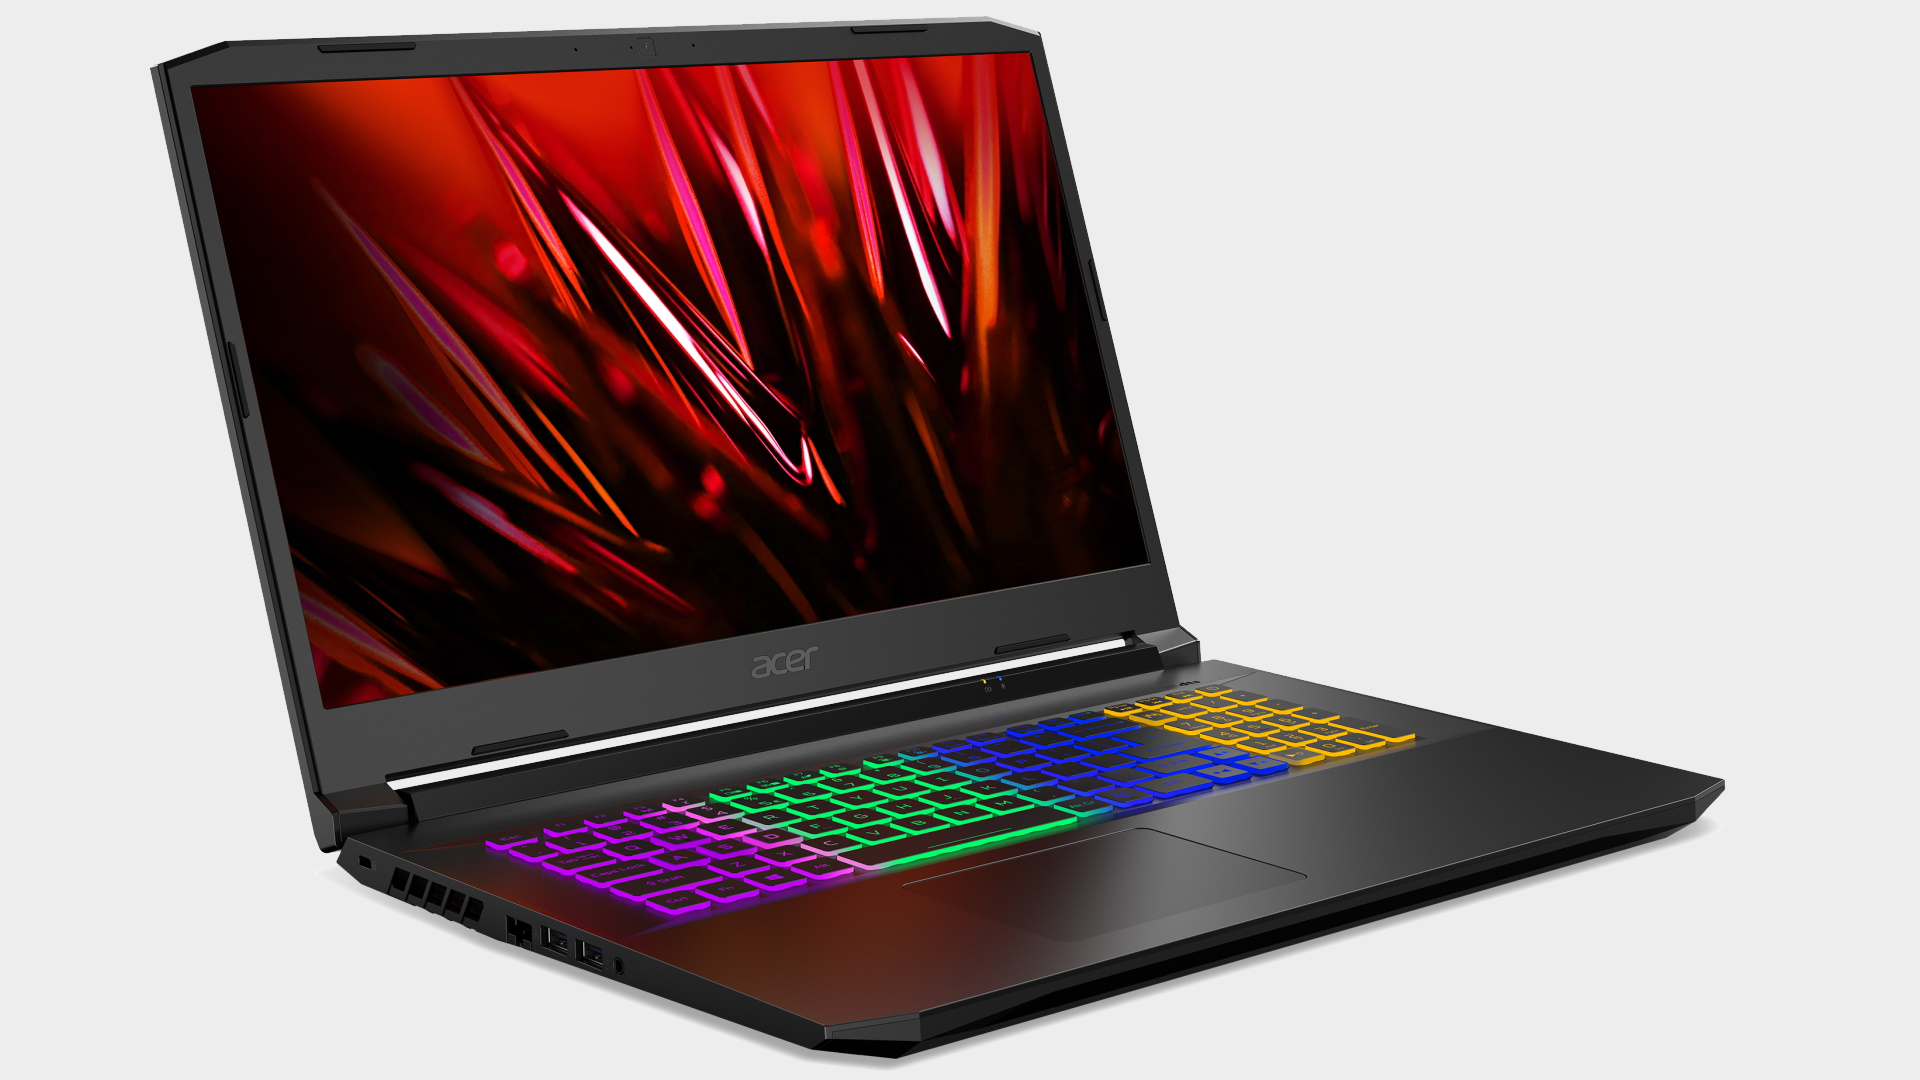 This RTX 2060 gaming laptop from Acer is on sale for $920